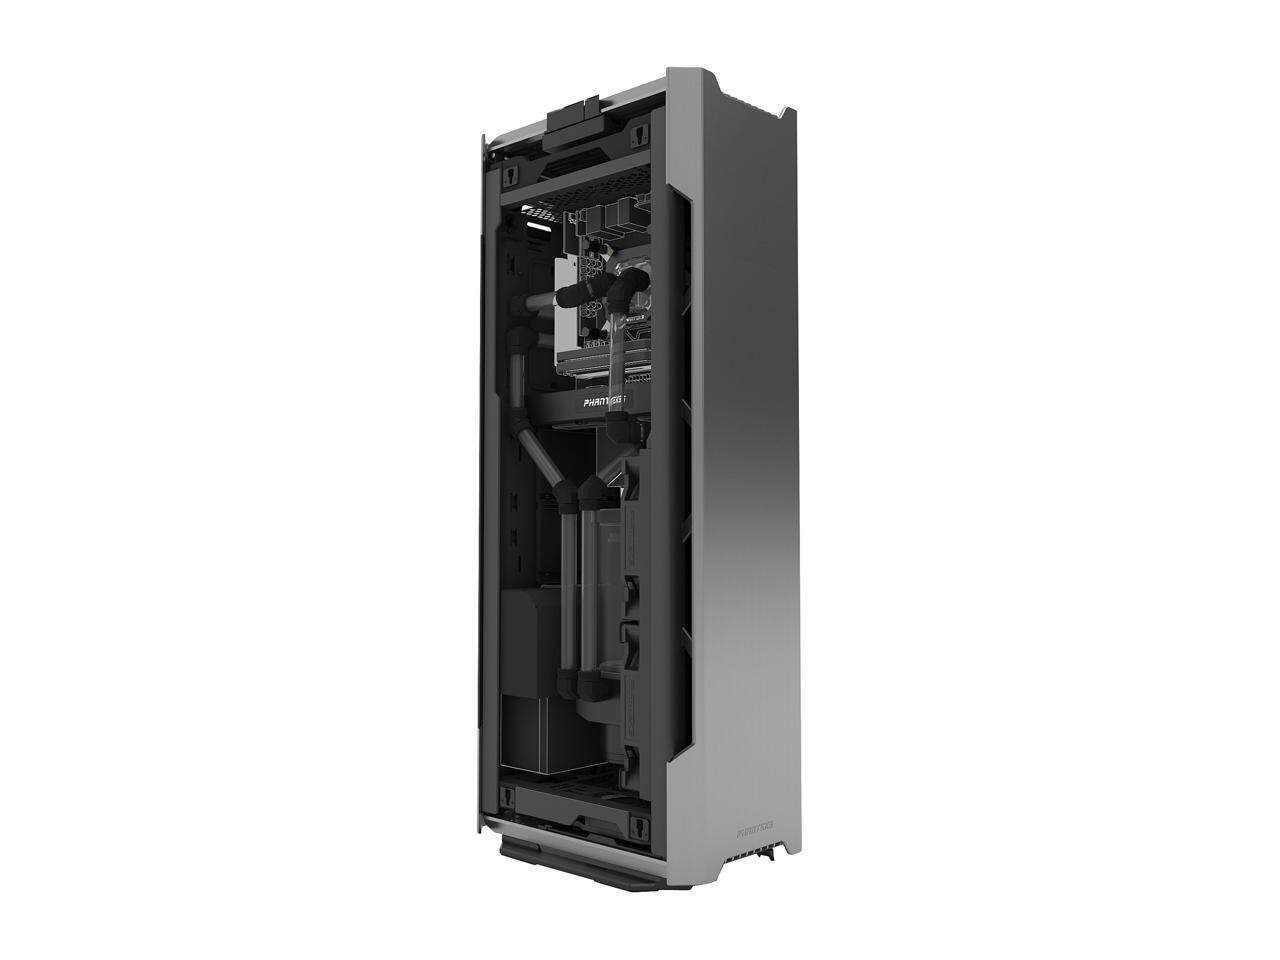 PHANTEKS ENTHOO EVOLV SHIFT X ANTHRACITE GRAY CHASSIS Malaysia